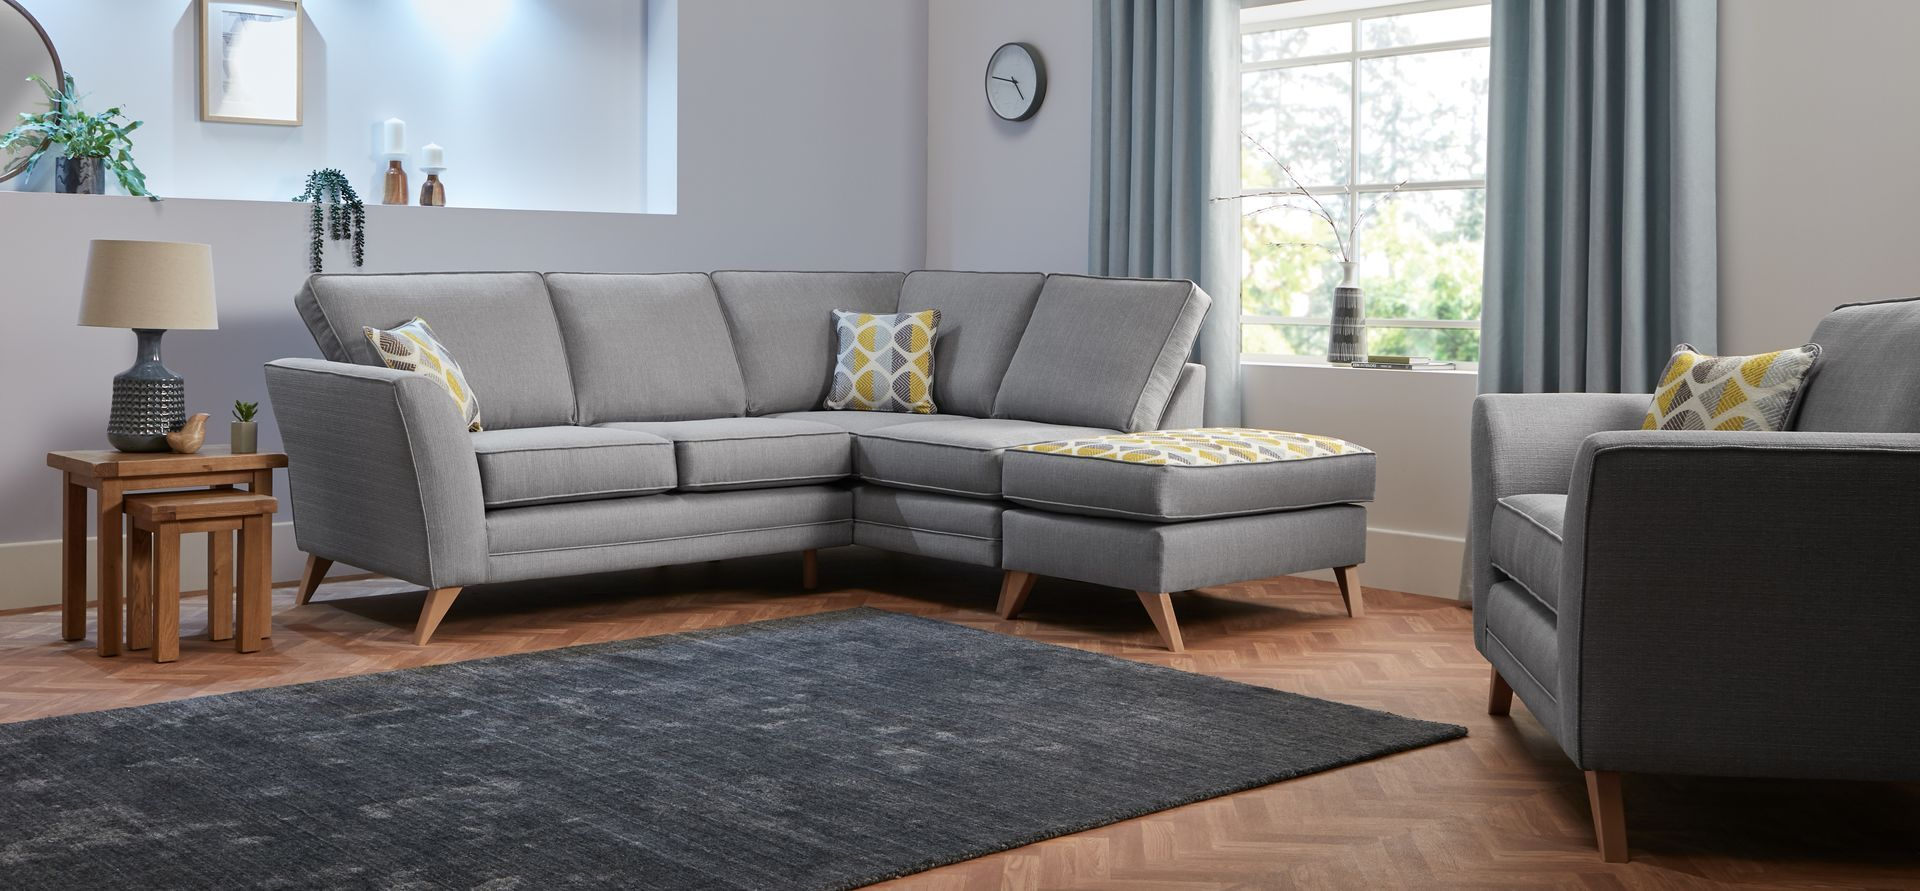 Helios 2 Corner 1 RHF Chaise Standard Back in 2019 | Sofa ...